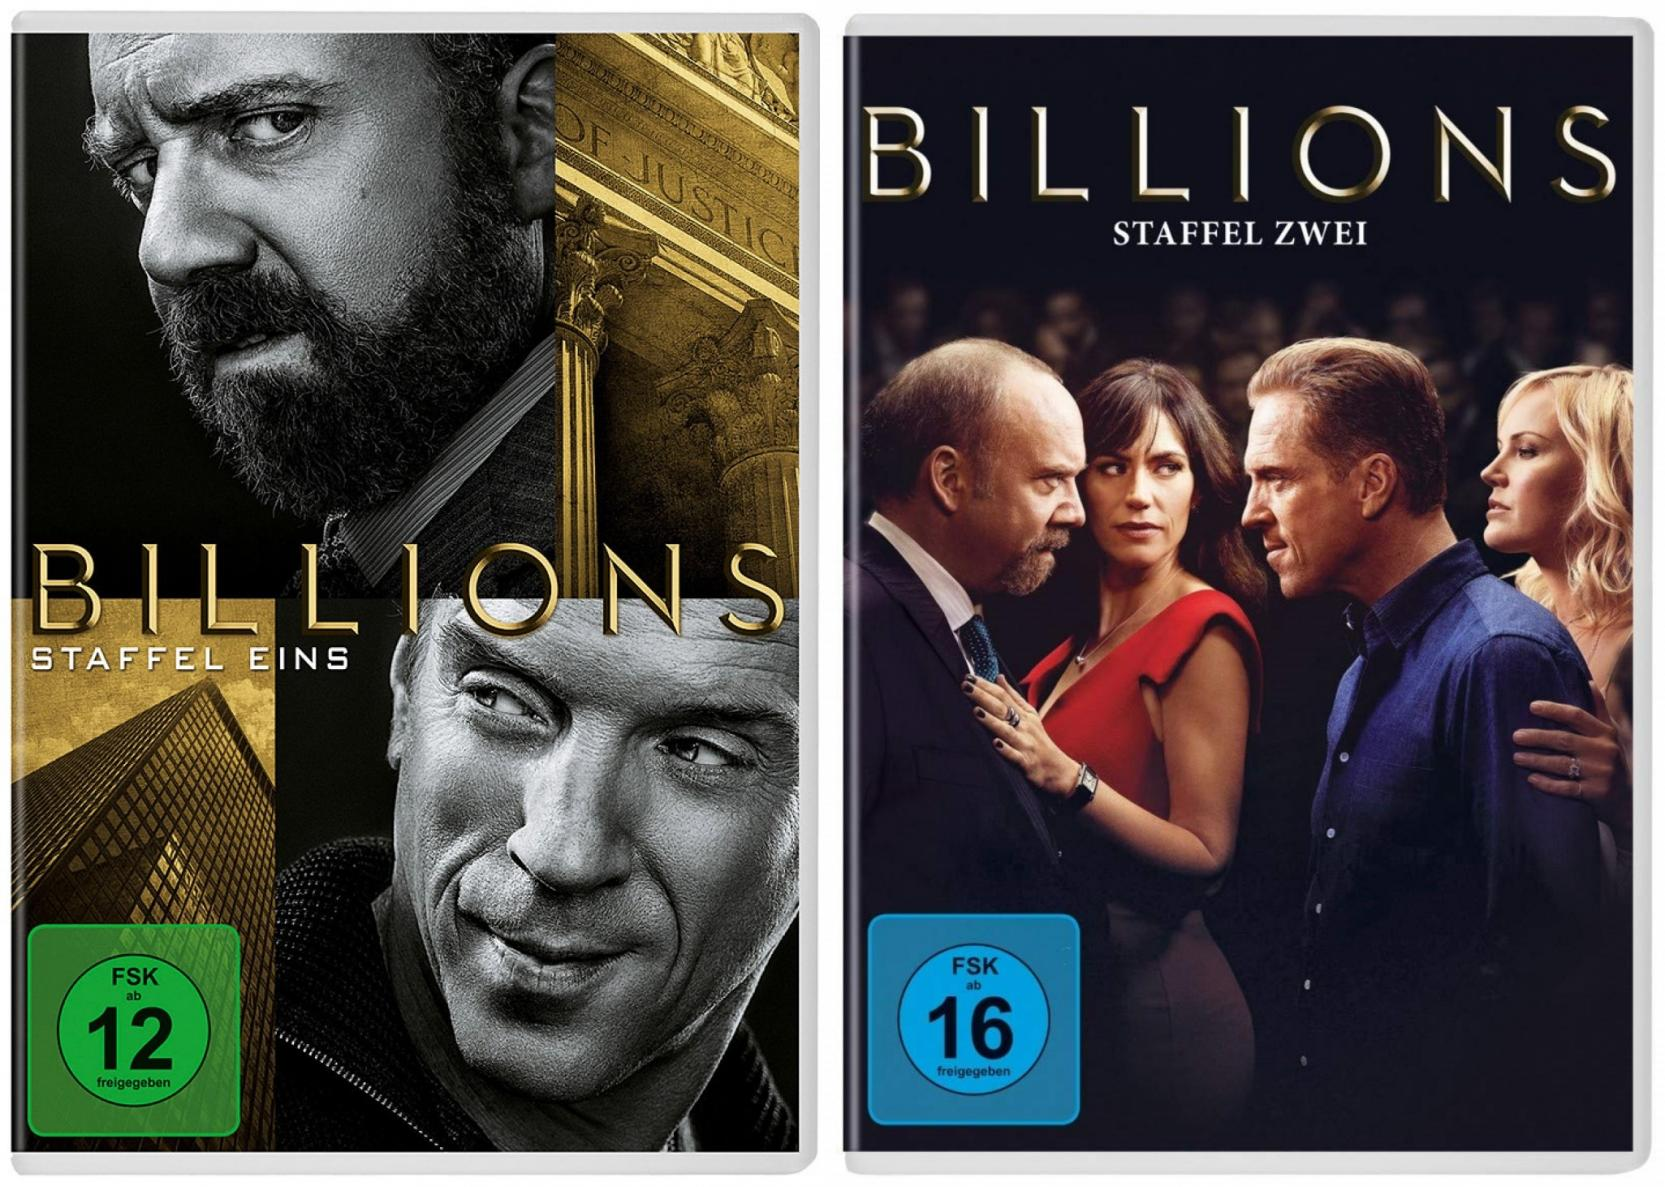 Billions - Staffel 1+2 Set (DVD)